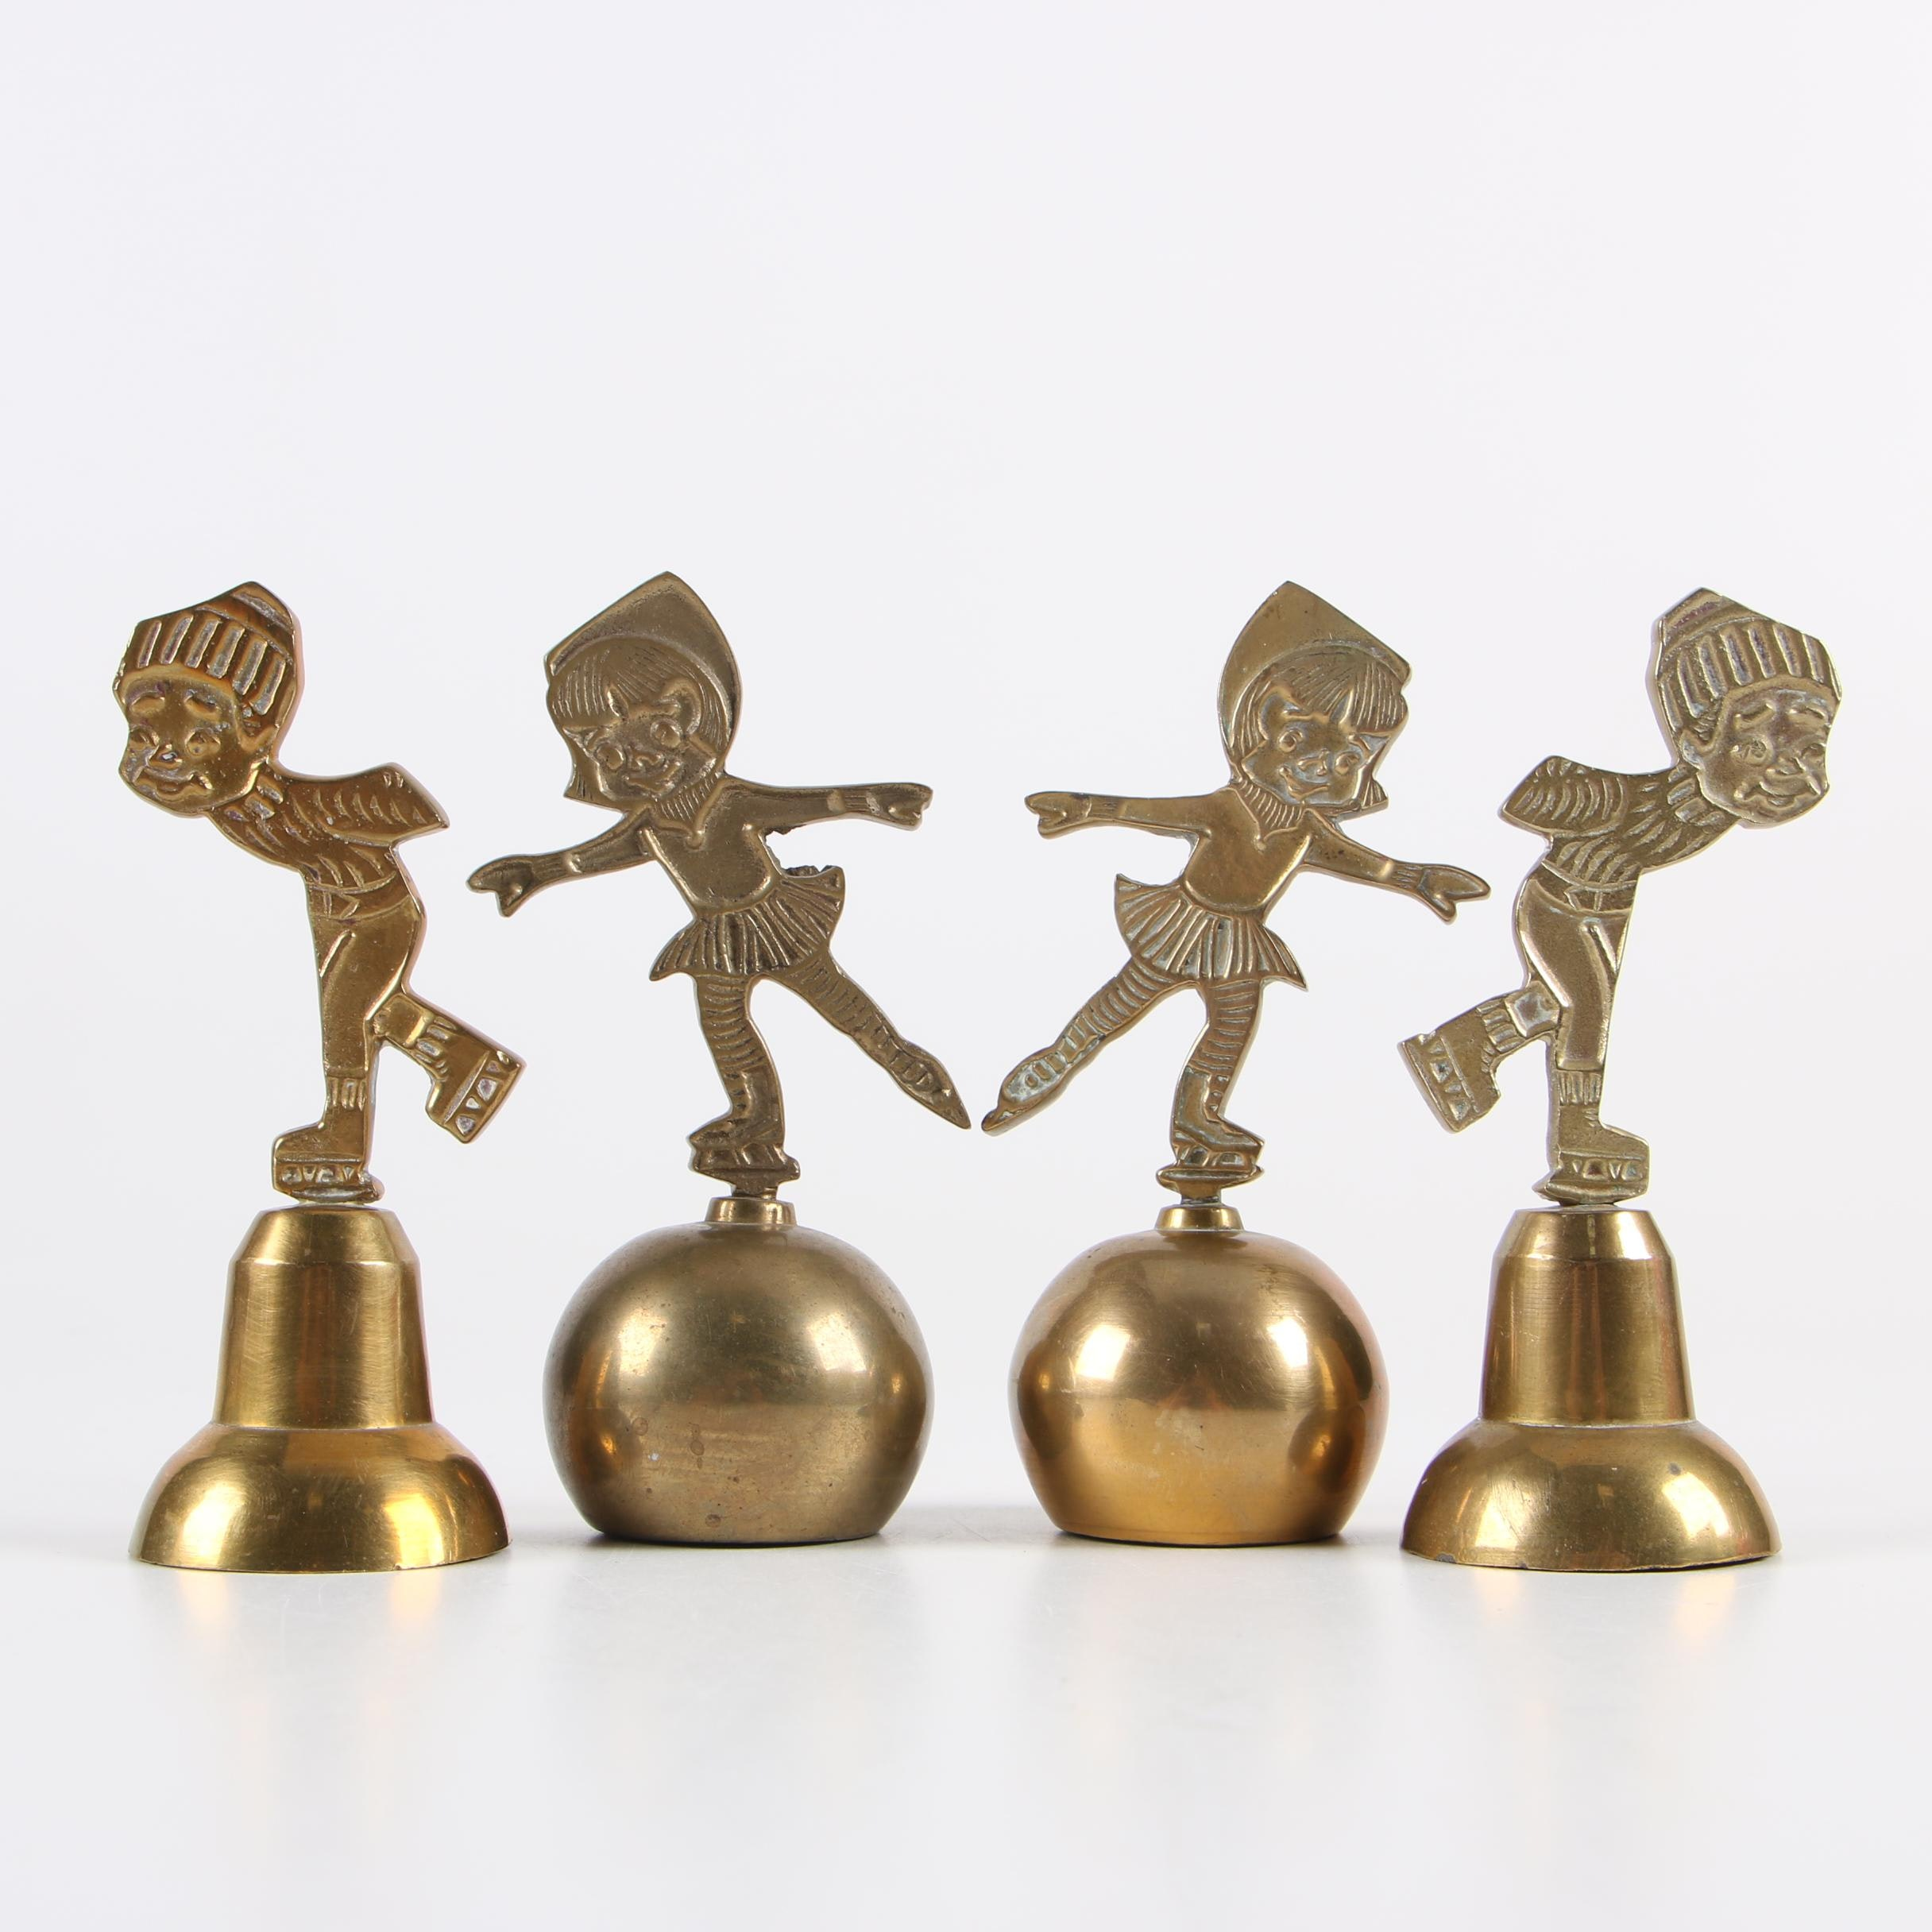 1970s Indian Brass Bells of Sarna with Ice Skating Motif